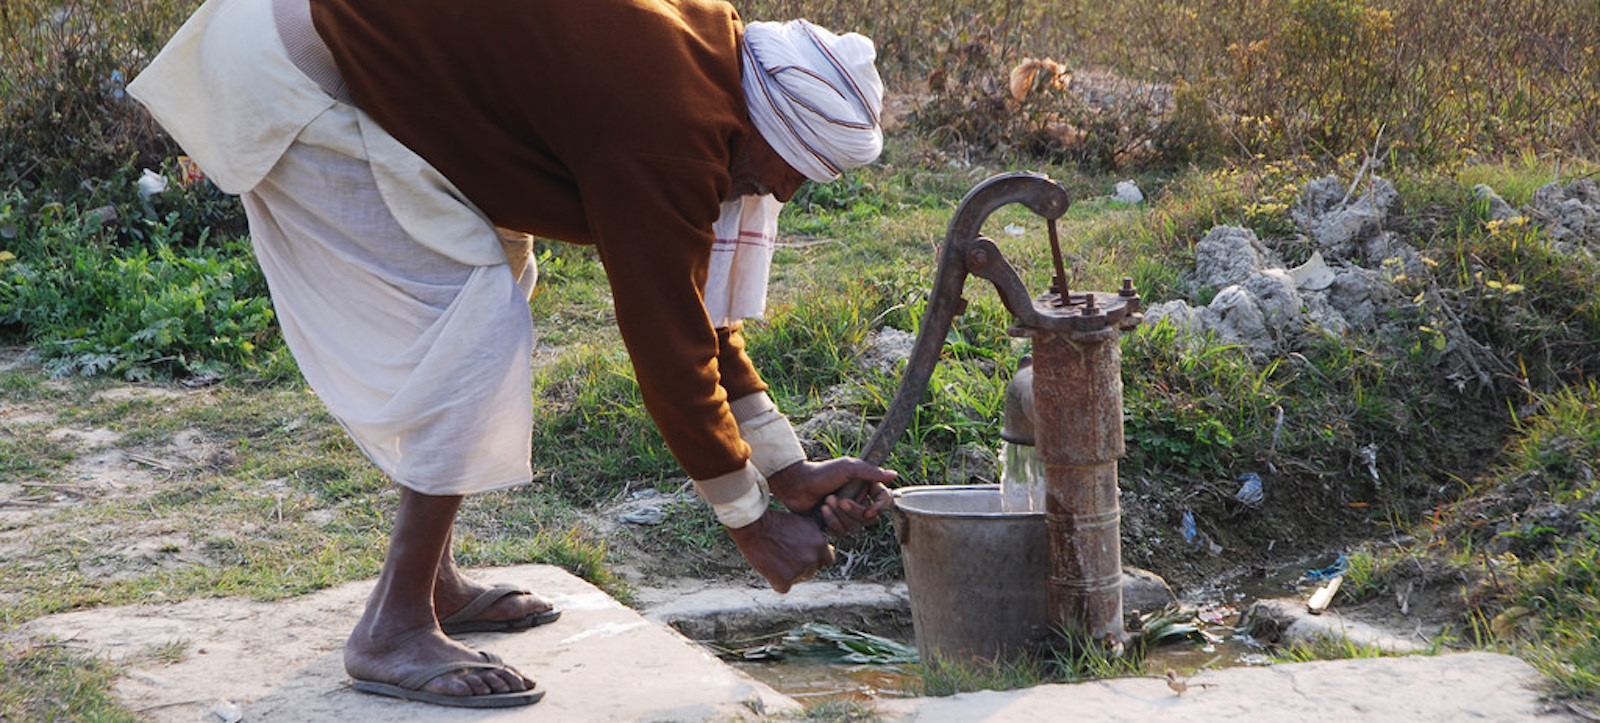 A farmer pumps water in Bihar, India (Photo: International Maize and Wheat Improvement Center/ Flickr)